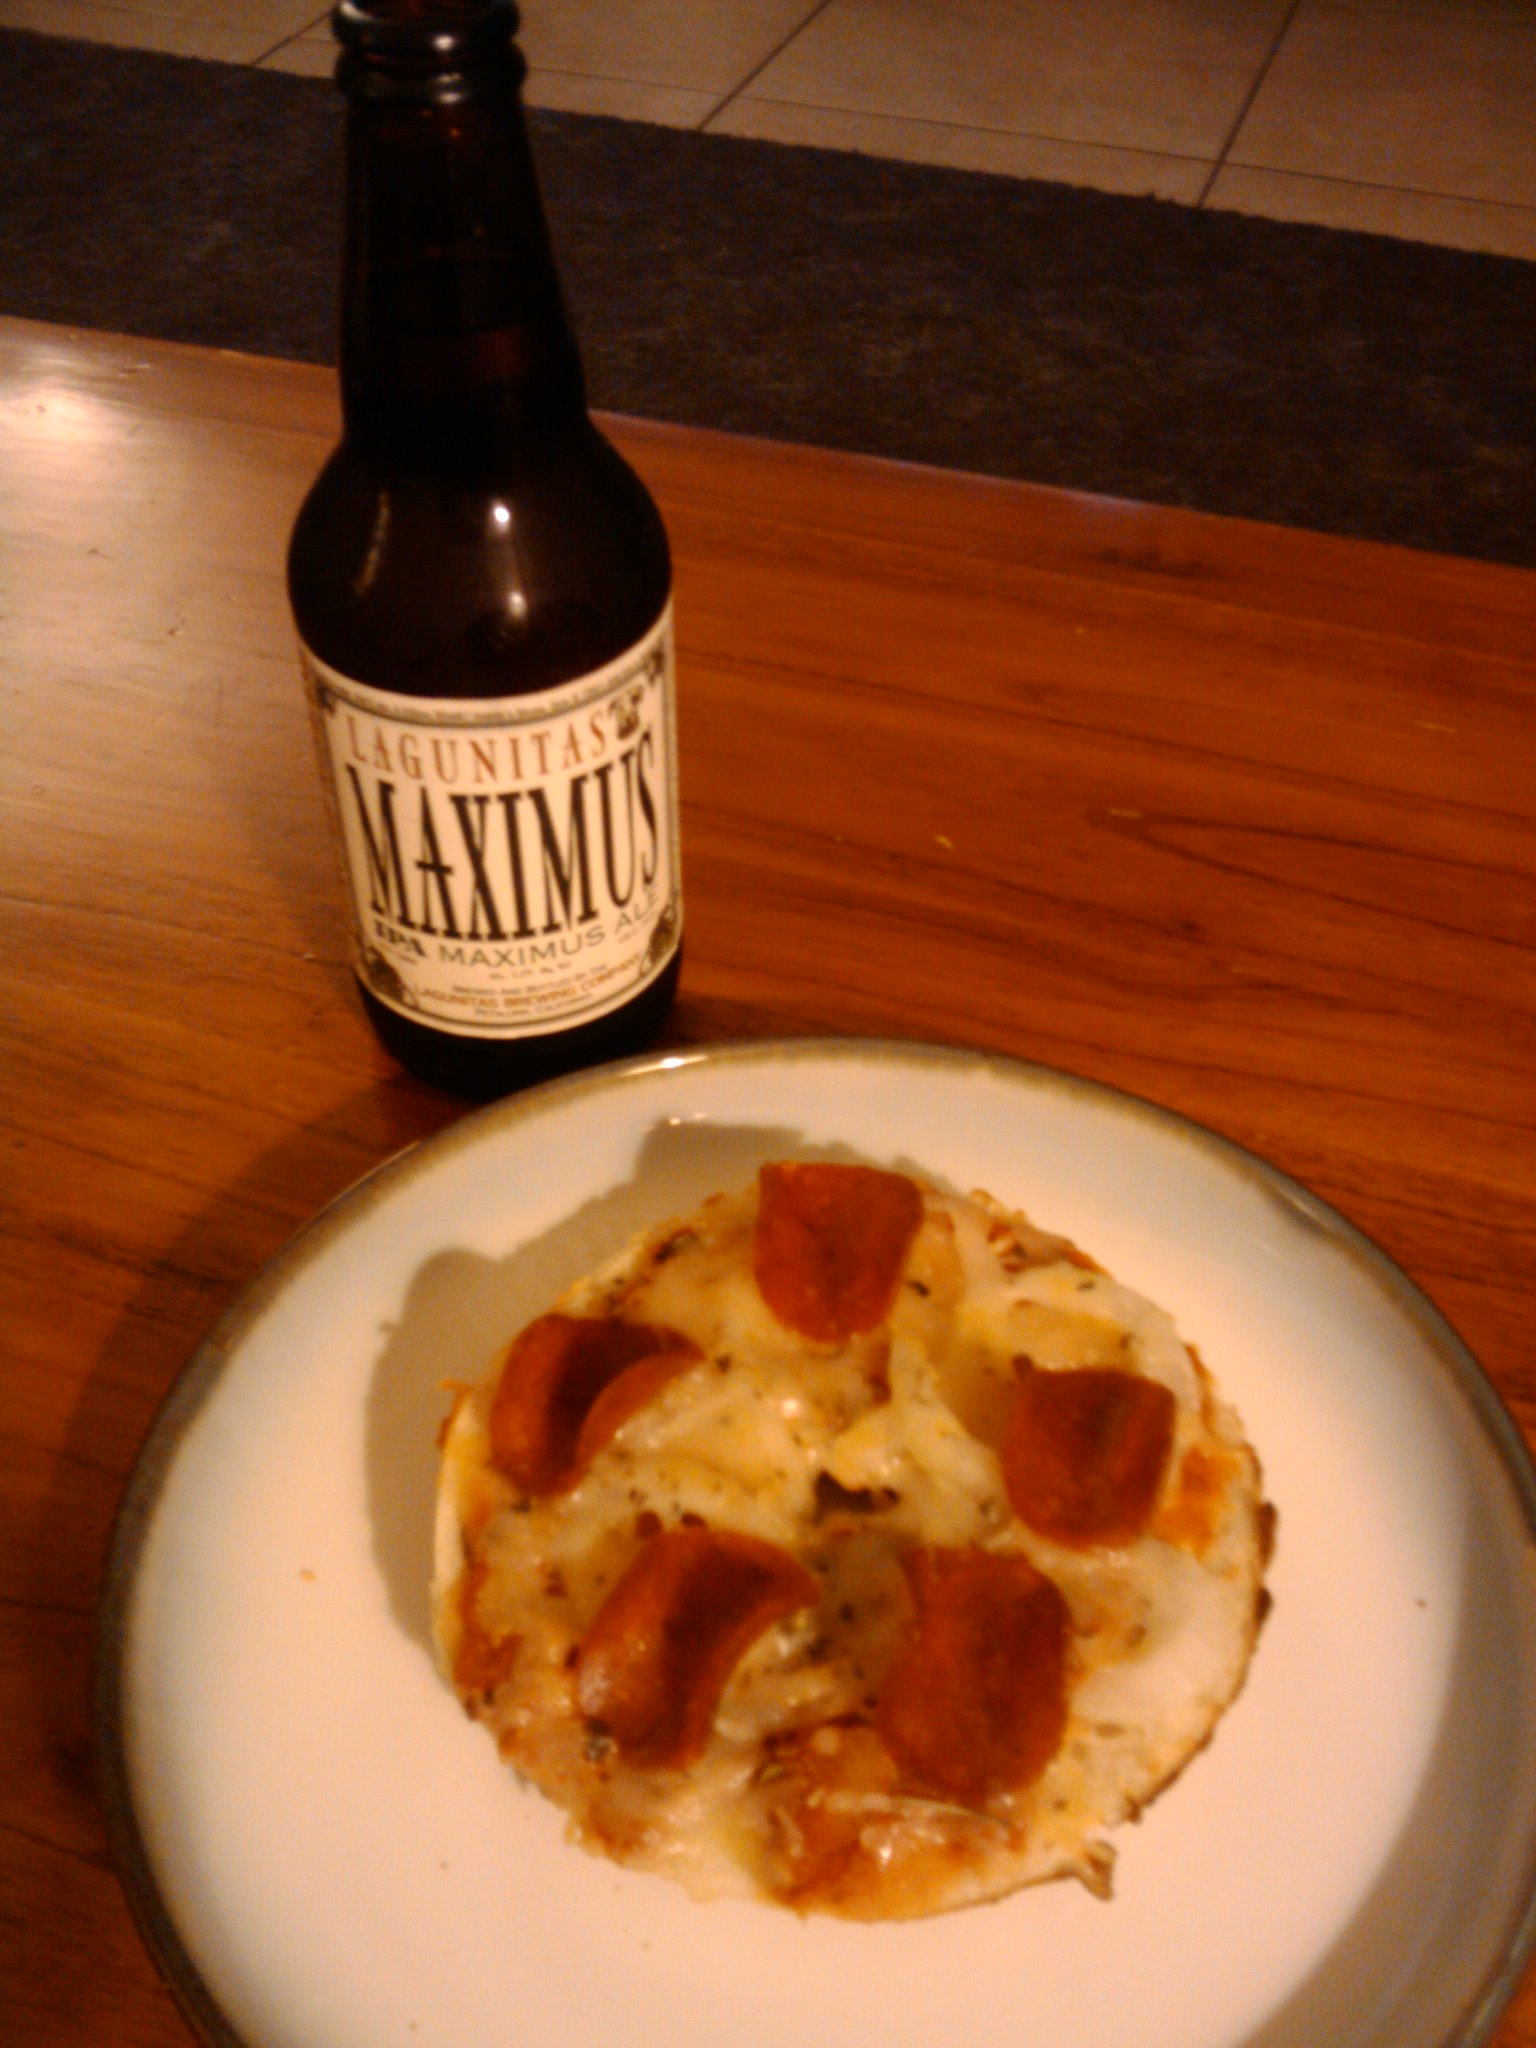 Orlando  :: parmesan bagel, sweet basil sauce, sweet onion,pepperoni, mexican 5 cheese, Italian seasonings. Lagunitas Maximus IPA beer @ 7.5% alcohol content. No verbs needed, only adjectives like delicious.